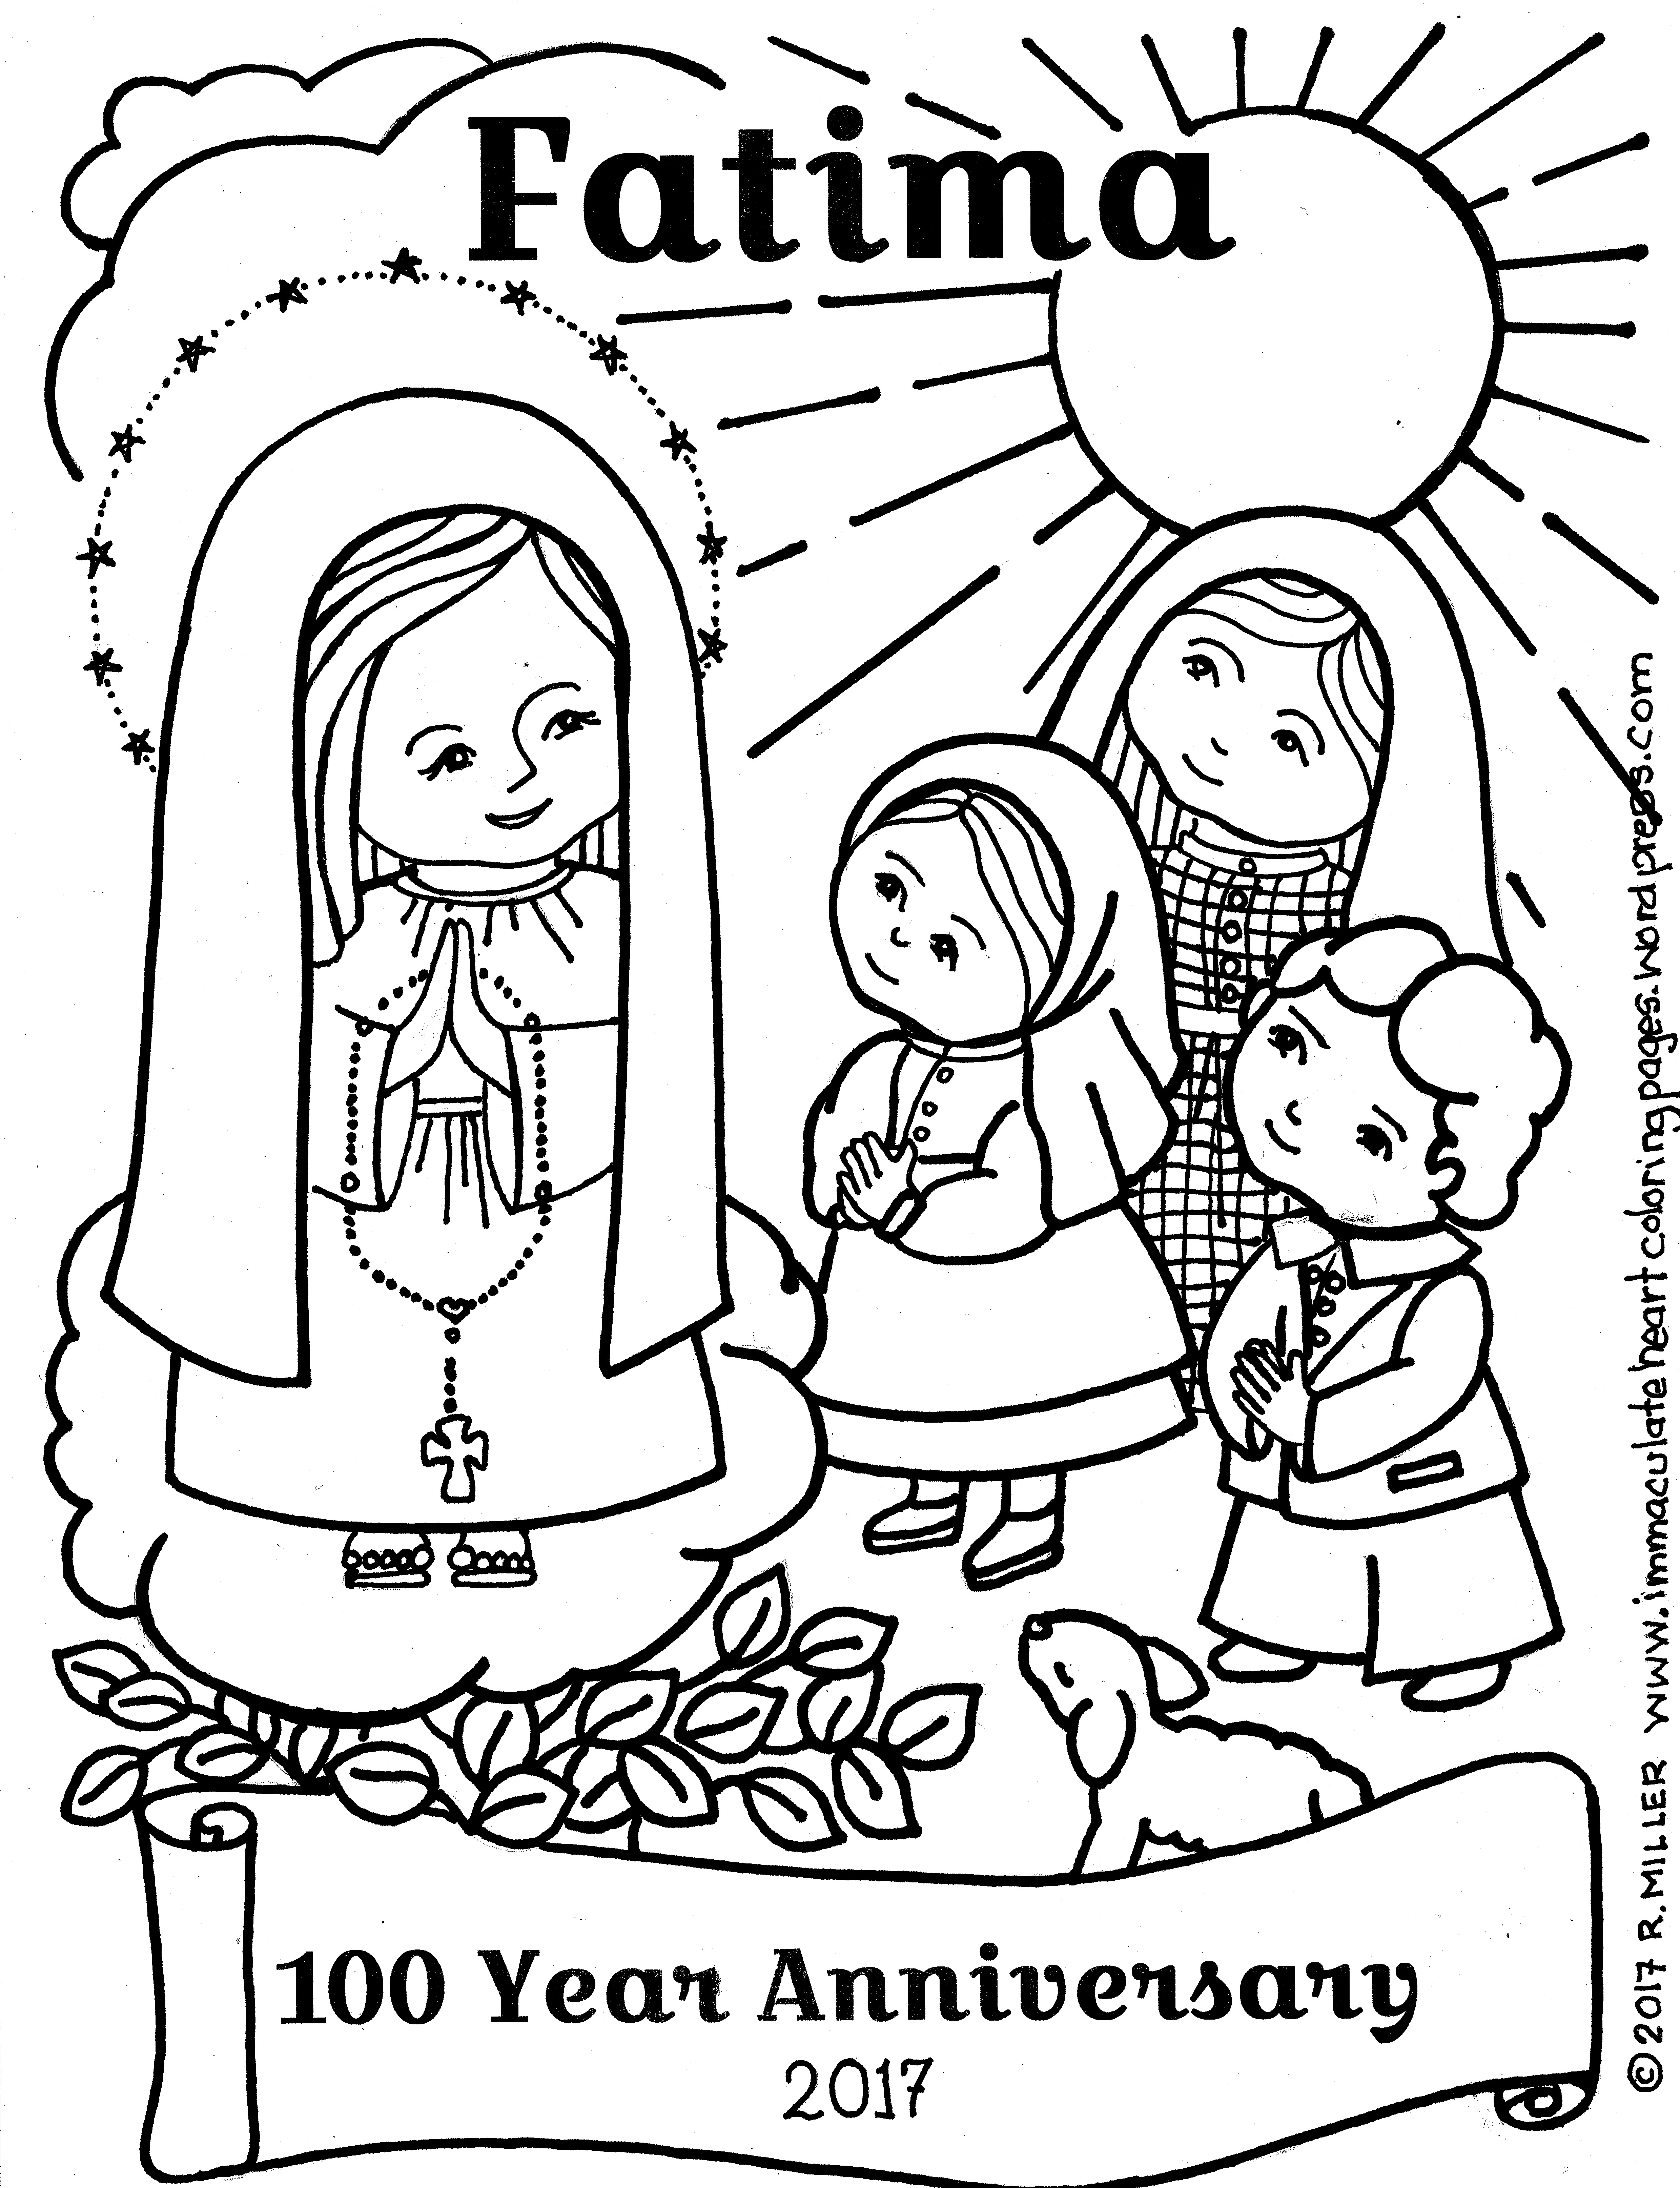 Just Of The Virgin Mary Coloring Pages - Worksheet & Coloring Pages